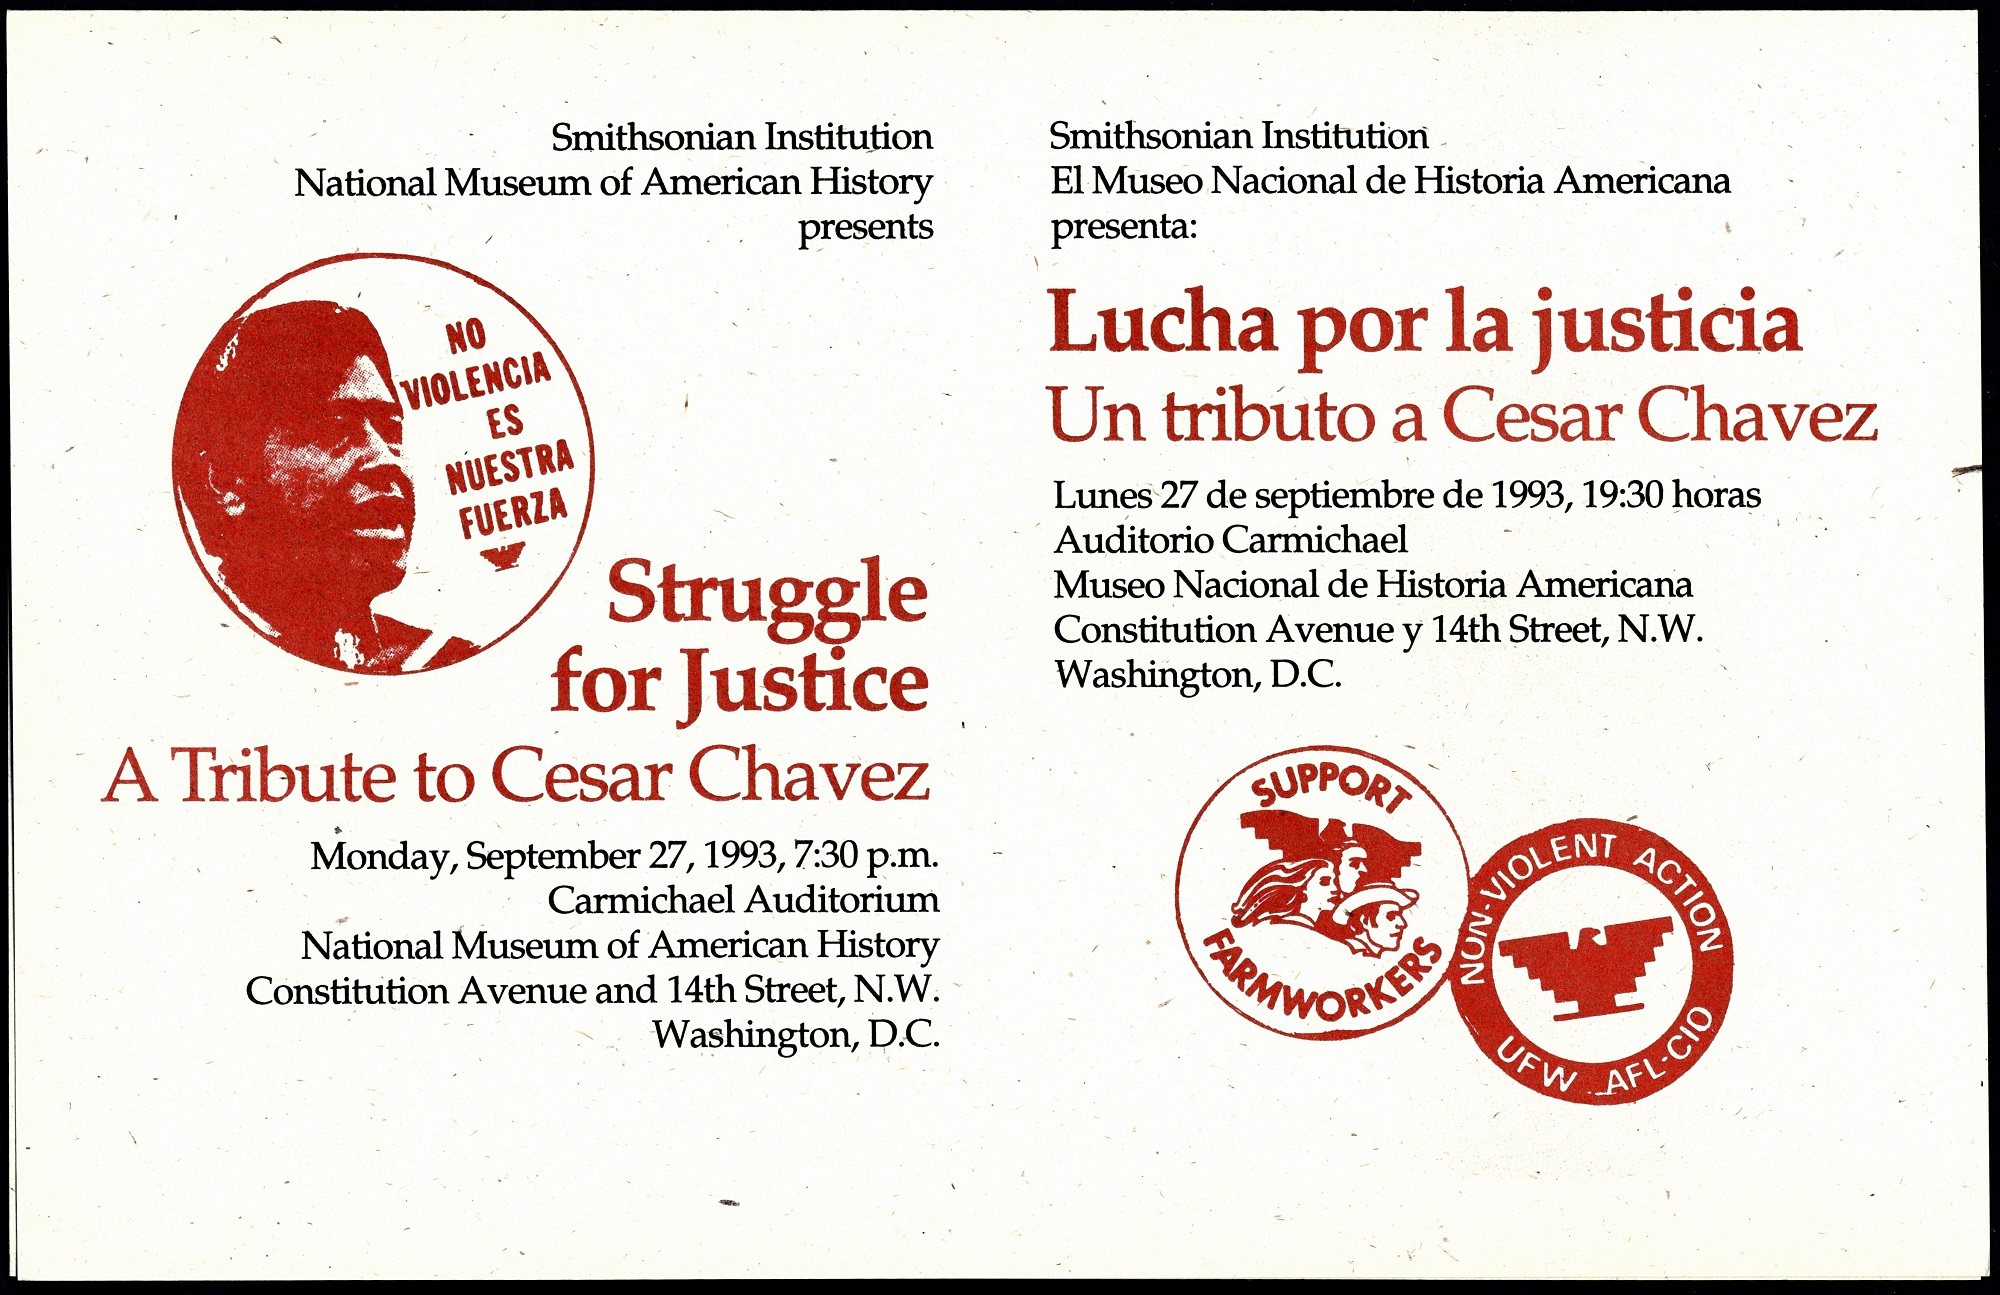 Struggle for Justice: A Tribute to Cesar Chavez at the National Museum of American History, flyer, 1